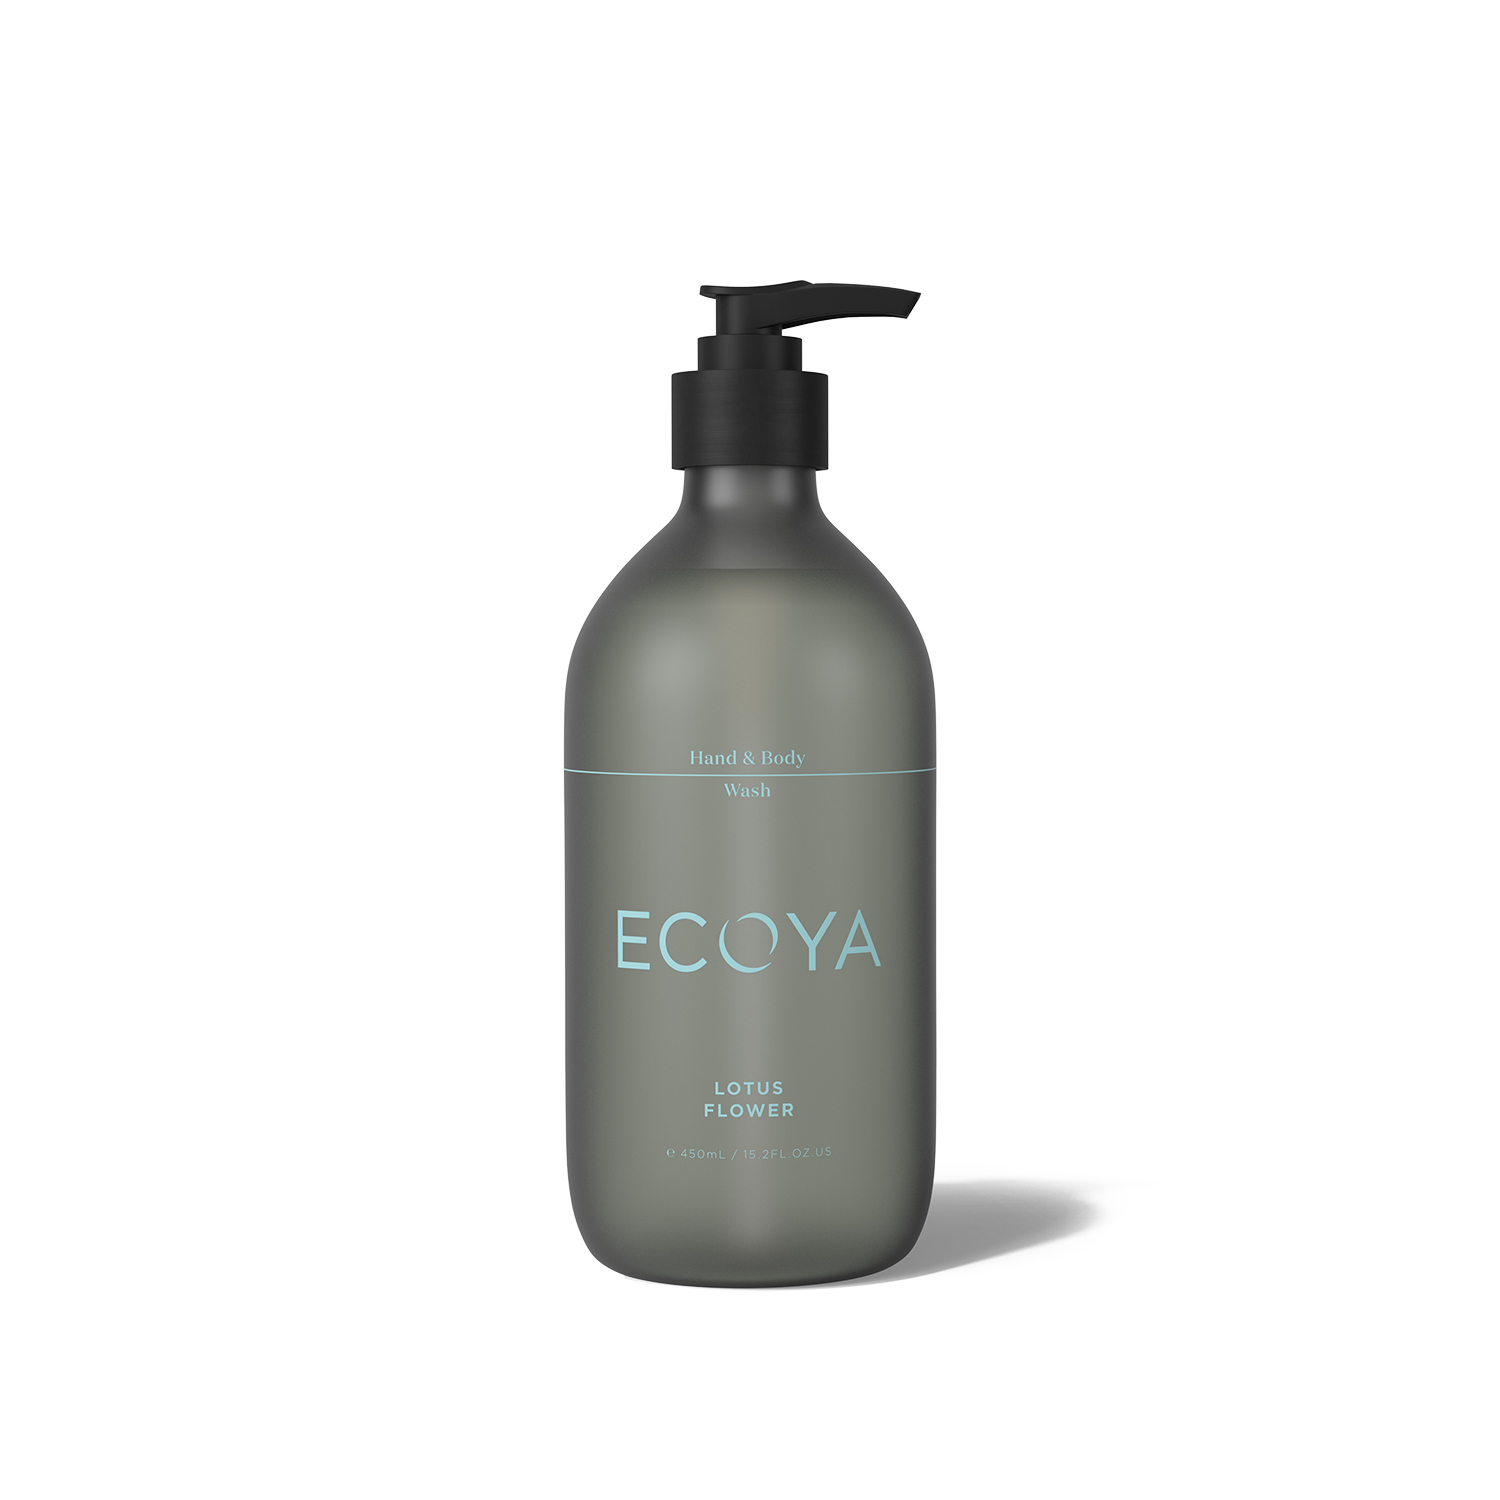 Ecoya Lotus Flower Hand and Body Wash 15.8oz (450ml)